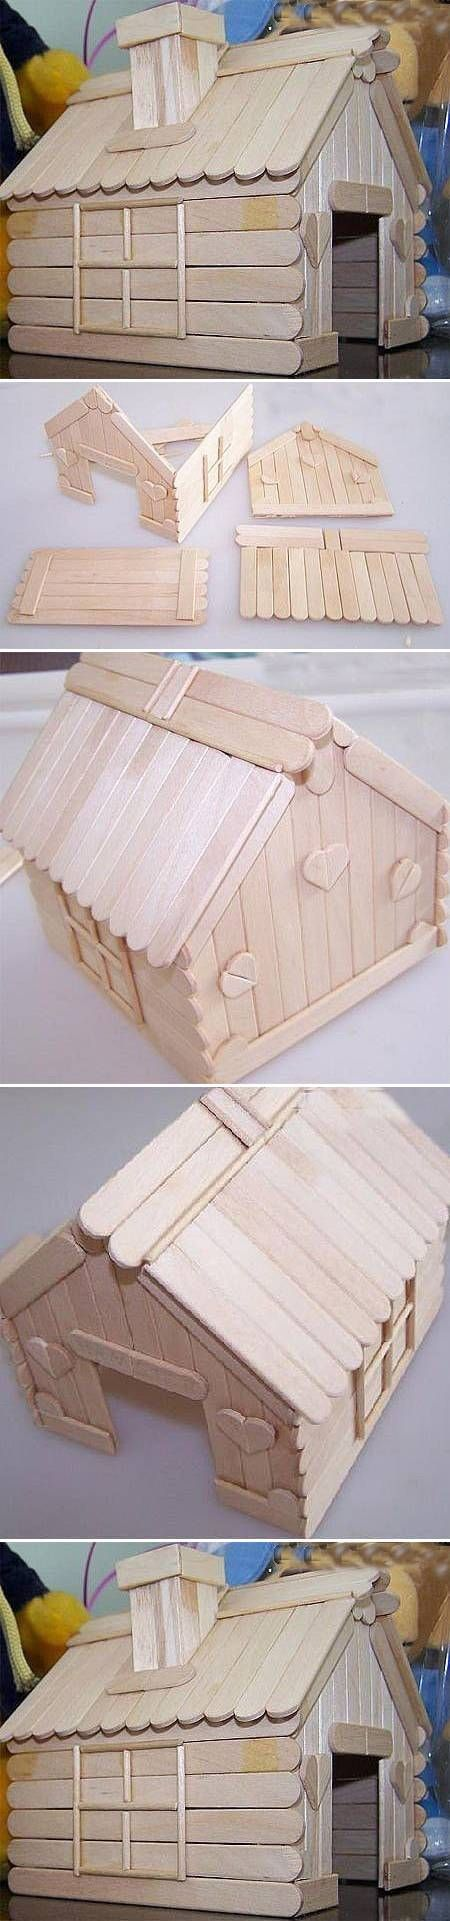 Jumbo wood craft sticks - How To Build A House With Popsicle Sticks Step By Step Diy Tutorial Instructions How